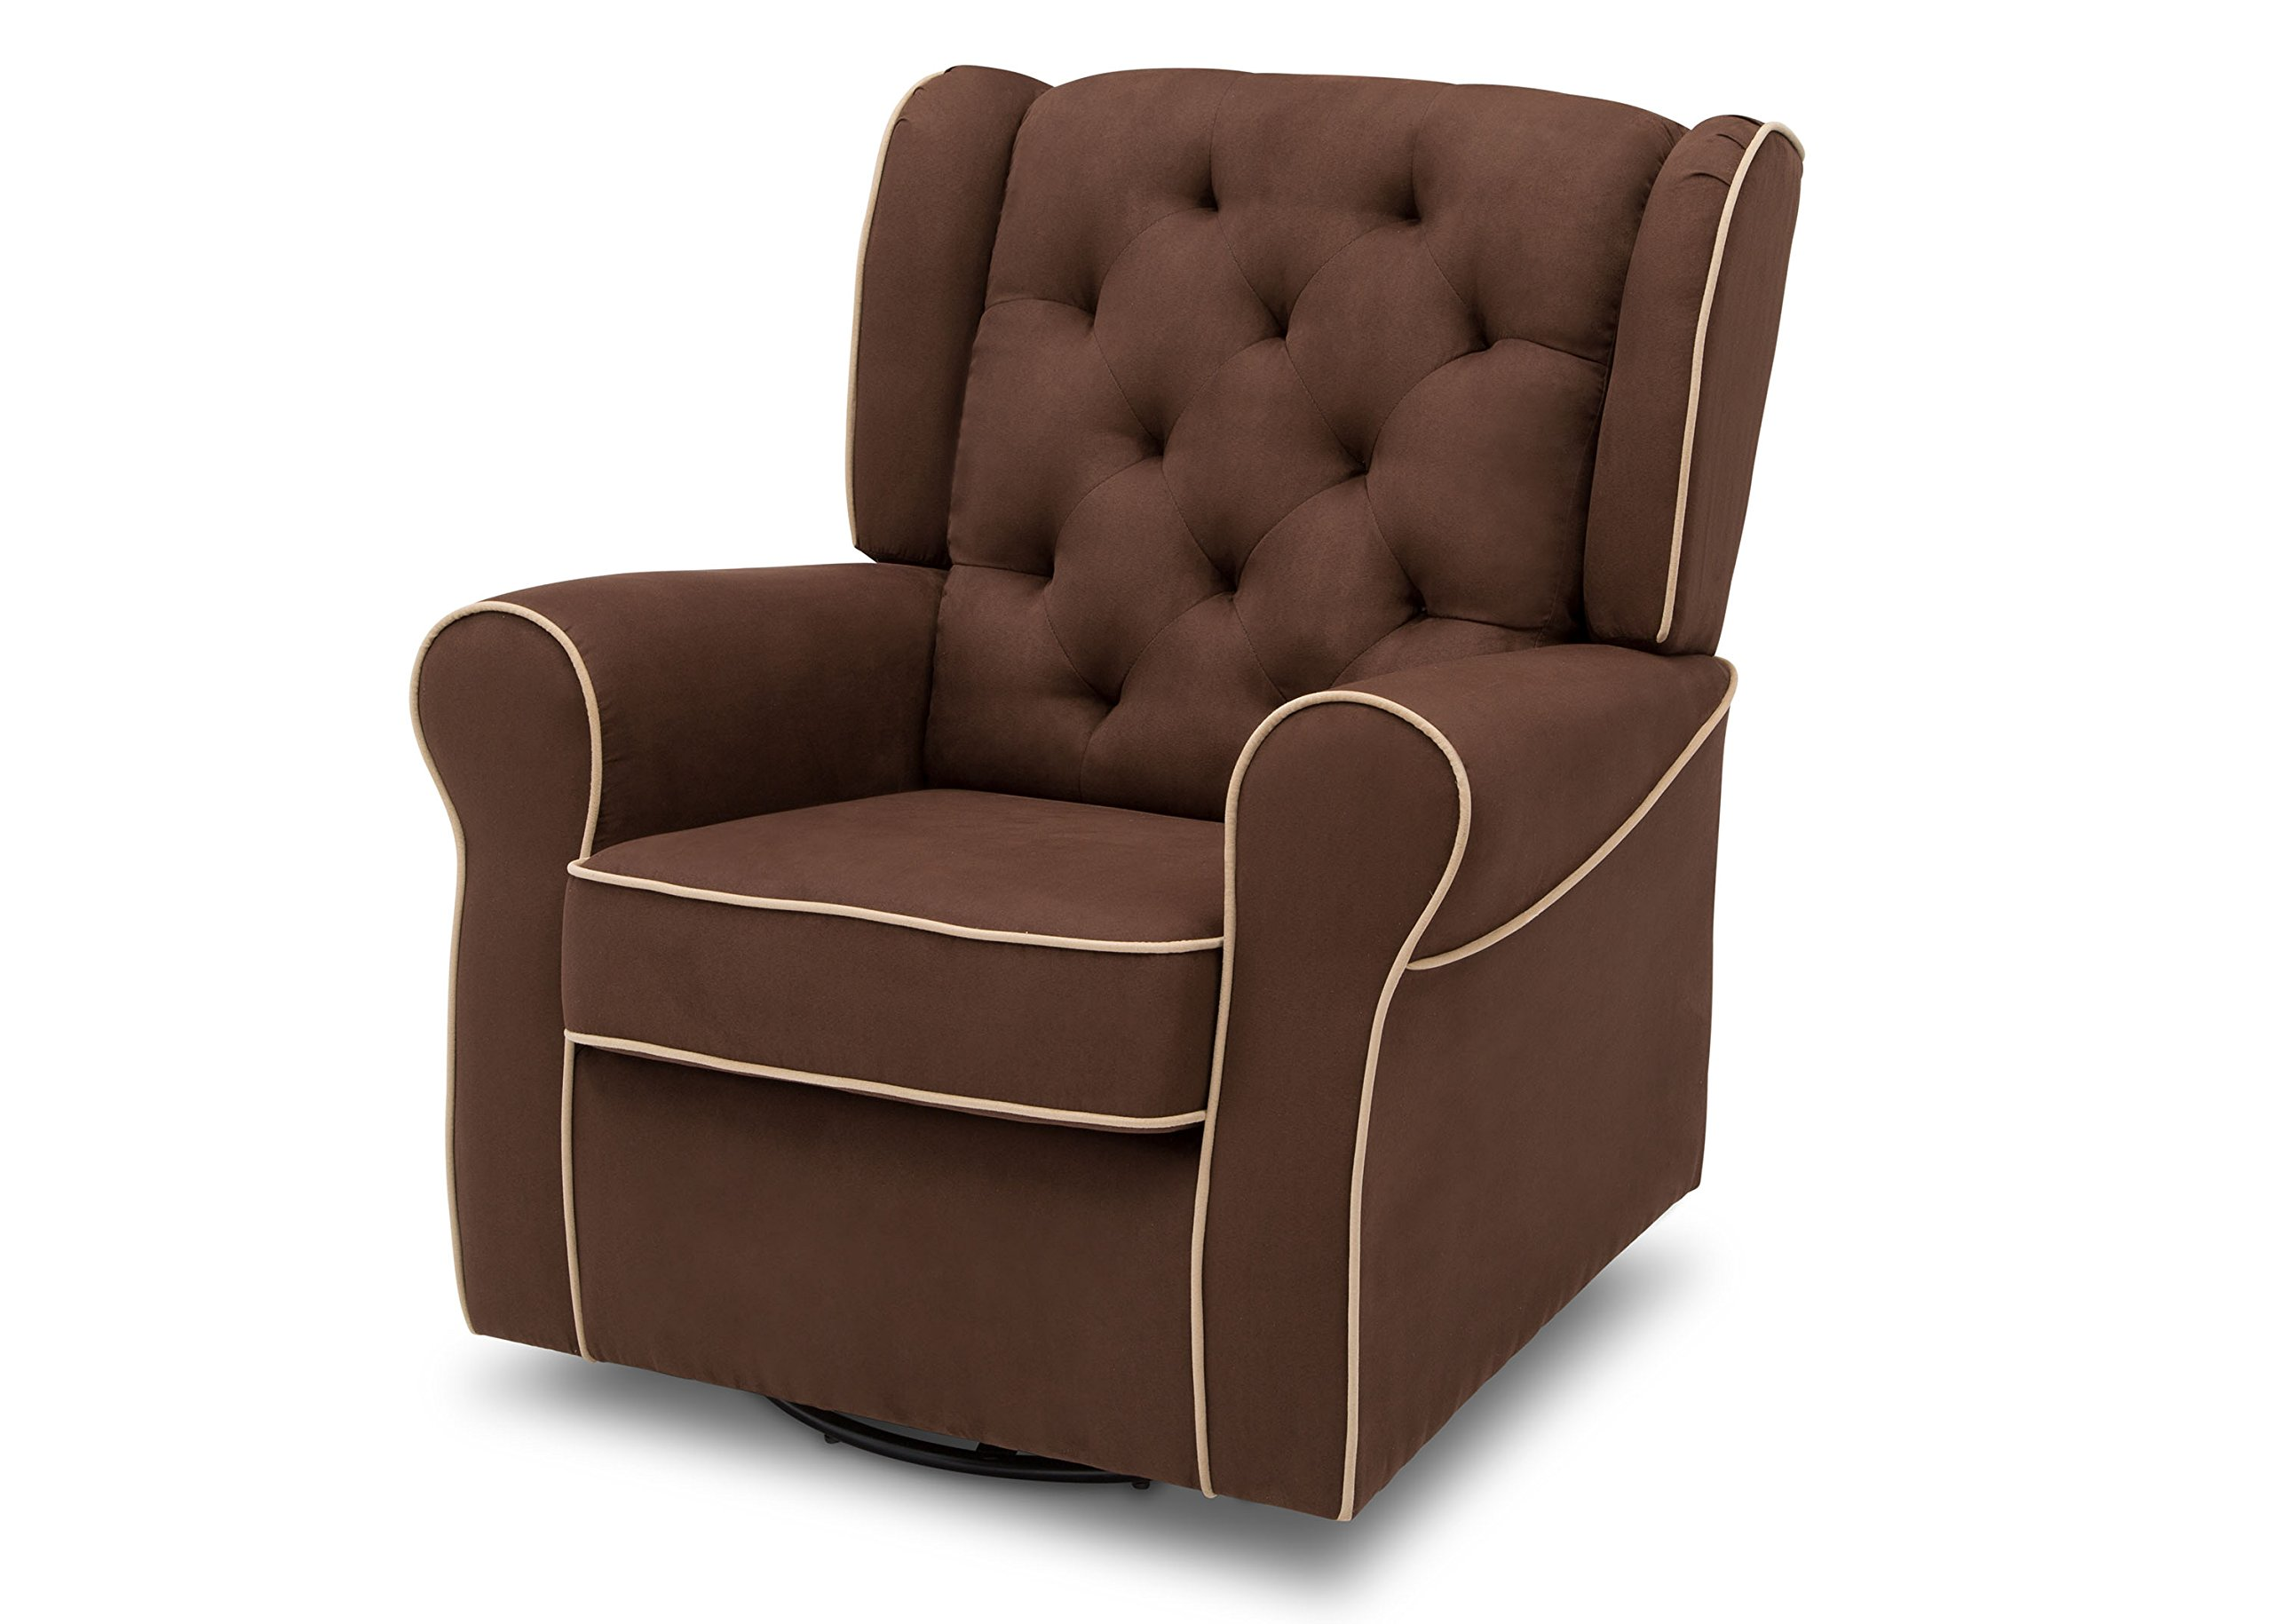 Delta Furniture Emerson Upholstered Glider Swivel Rocker Chair, Cocoa with Beige Welt